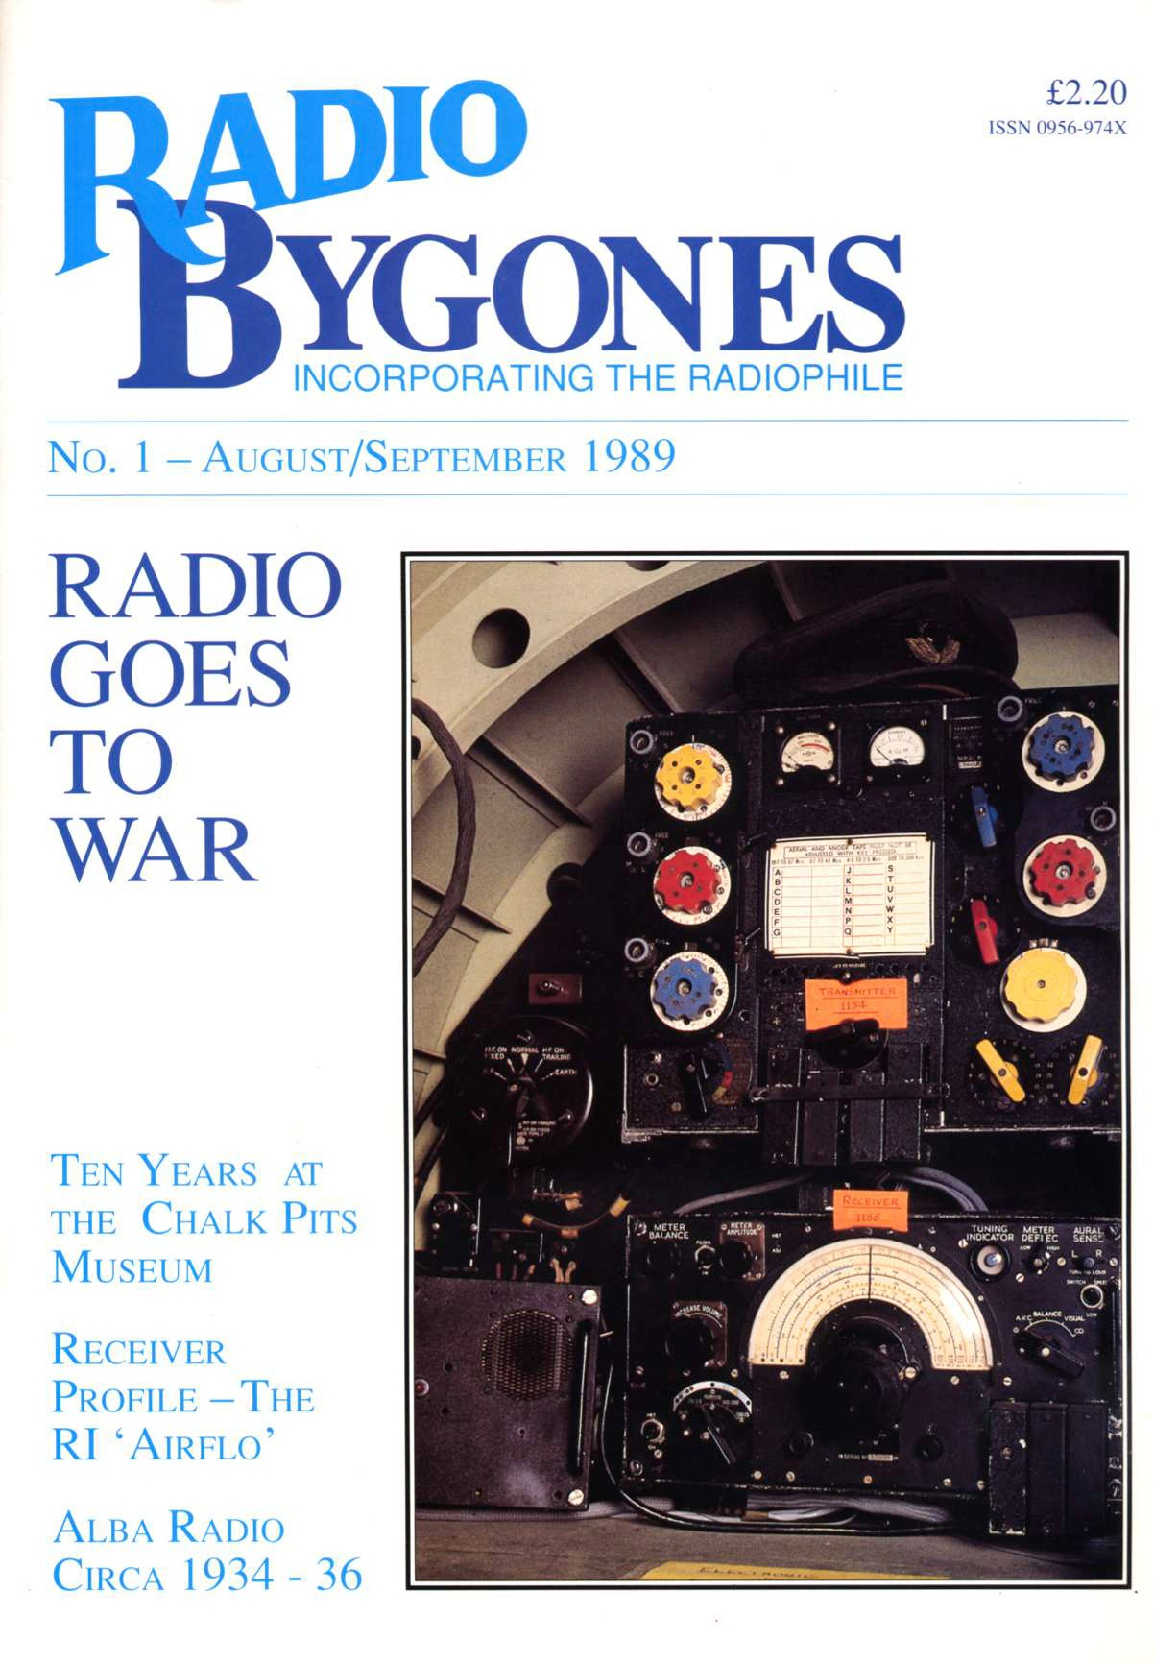 Radio Bygones Issue 1 - PDF